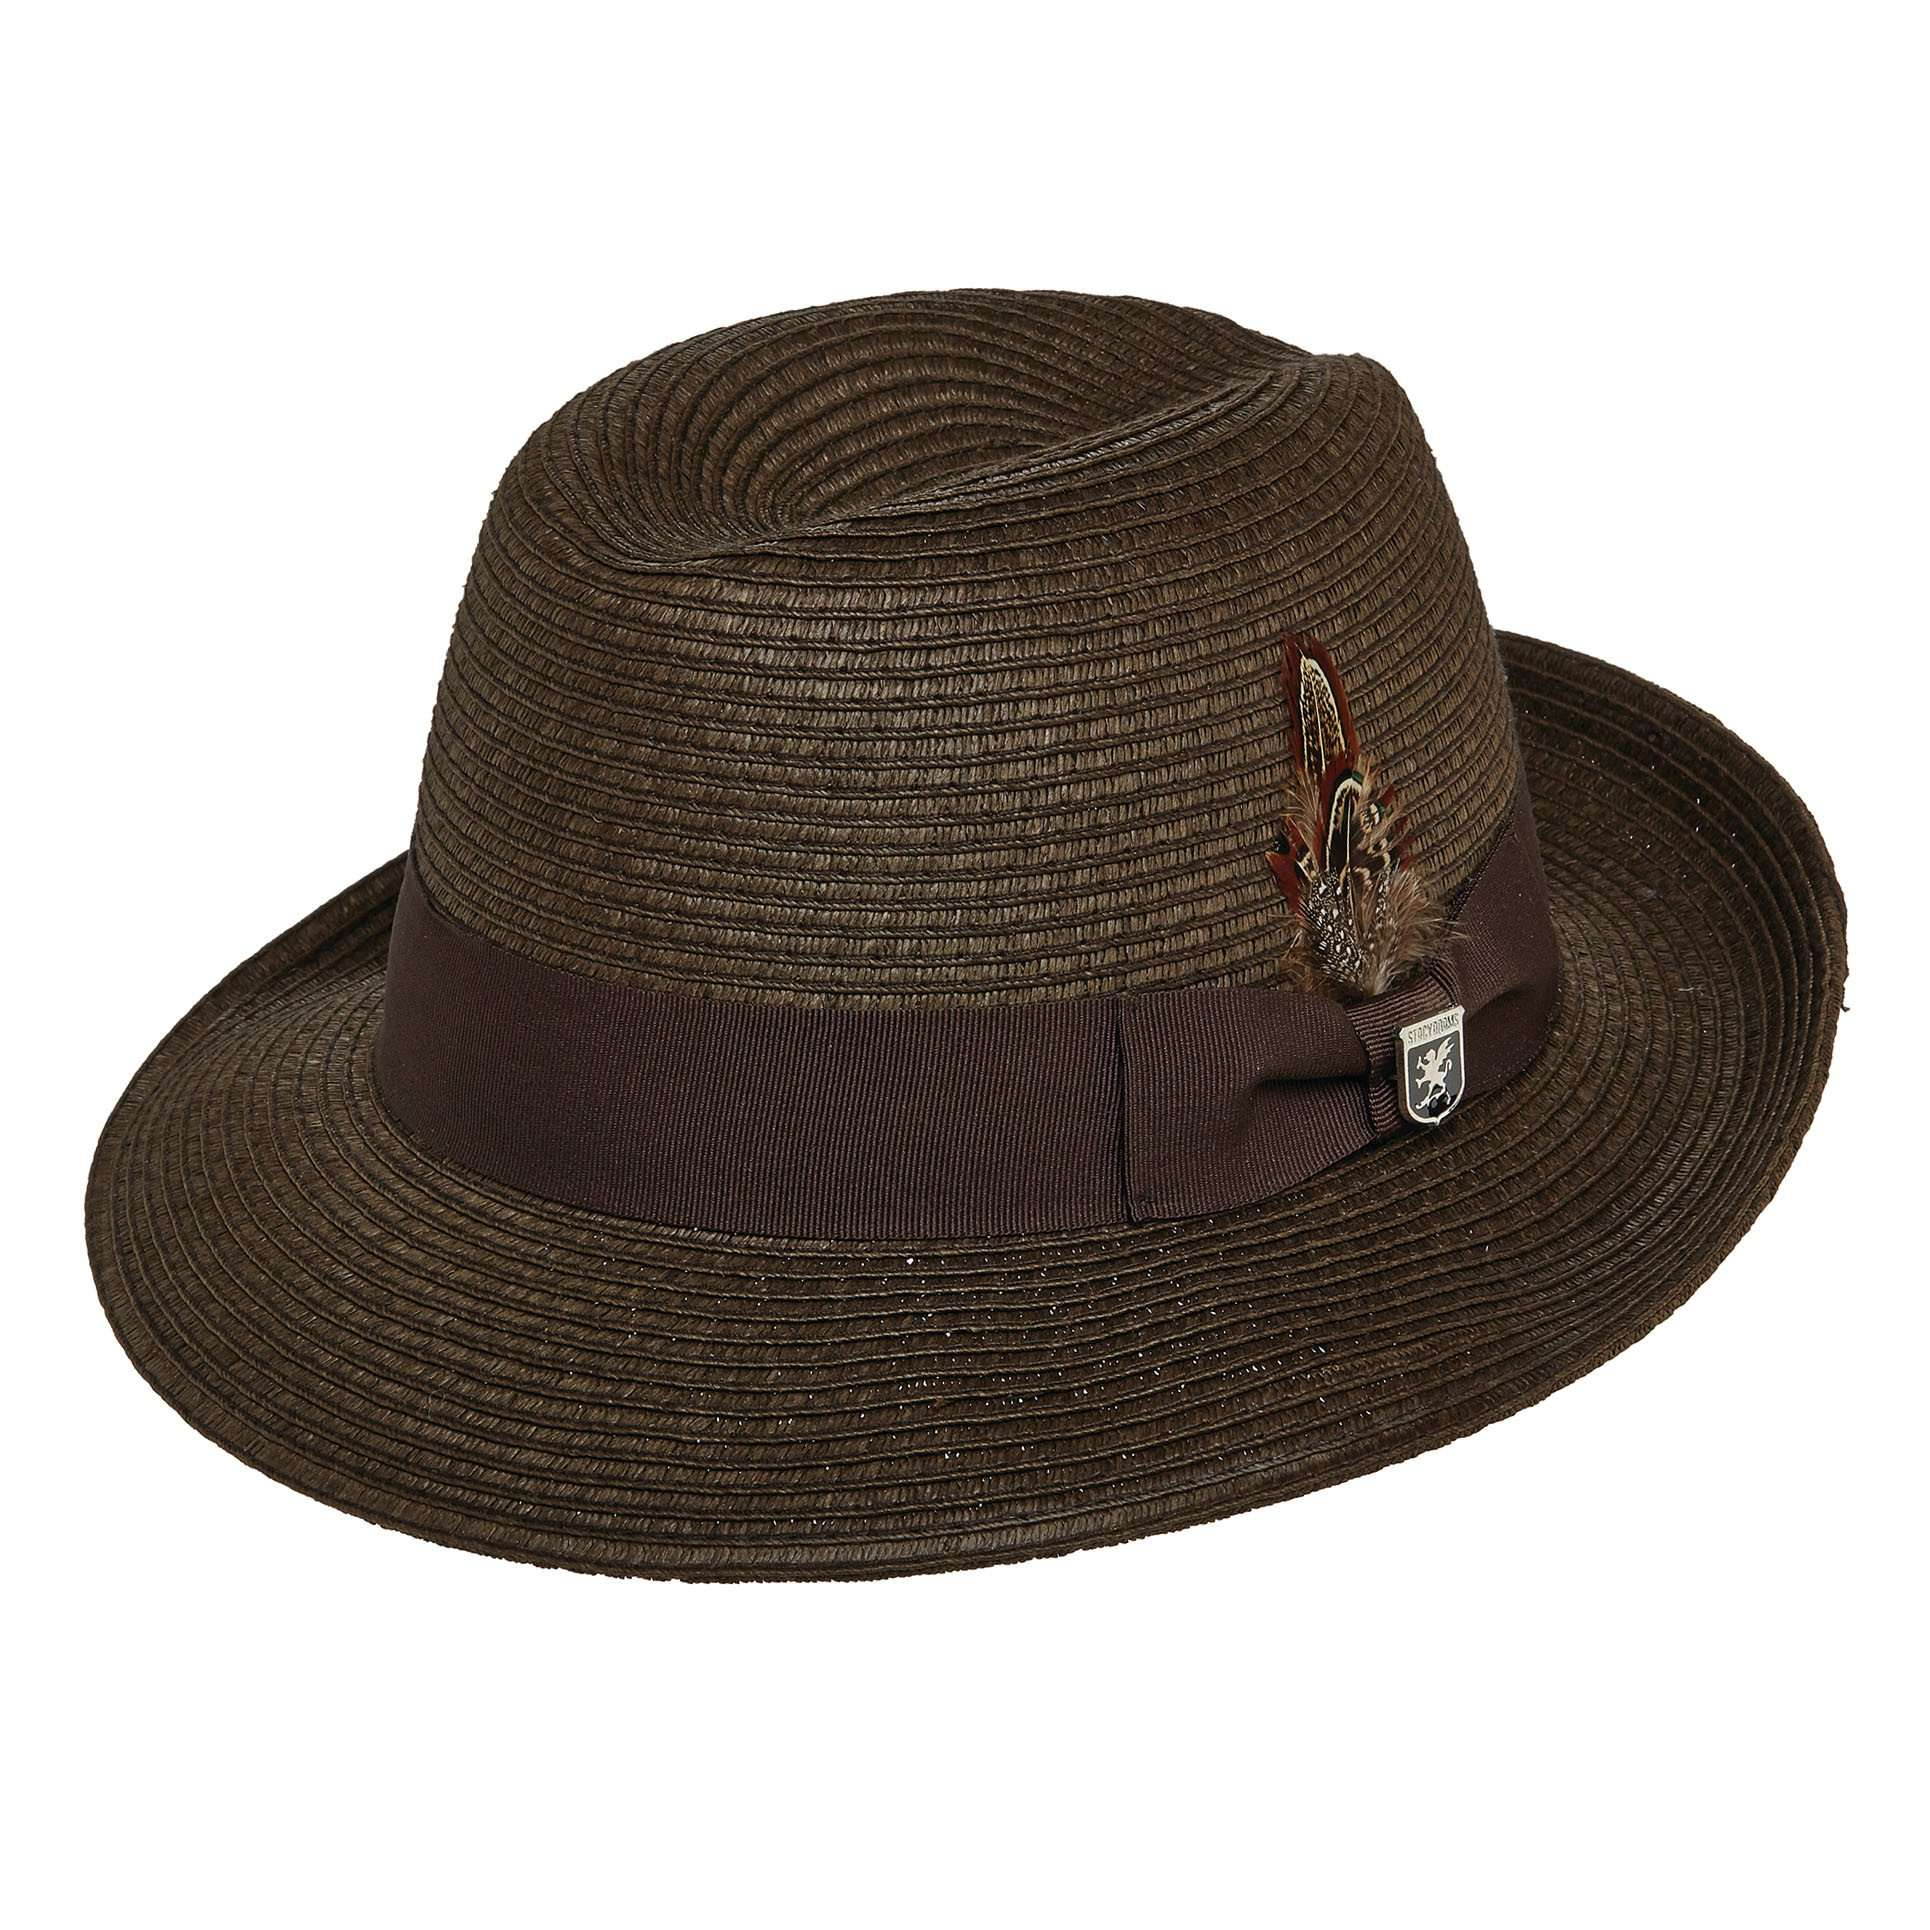 Stacy Adams Summer Fedora - Chocolate - SetarTrading Hats